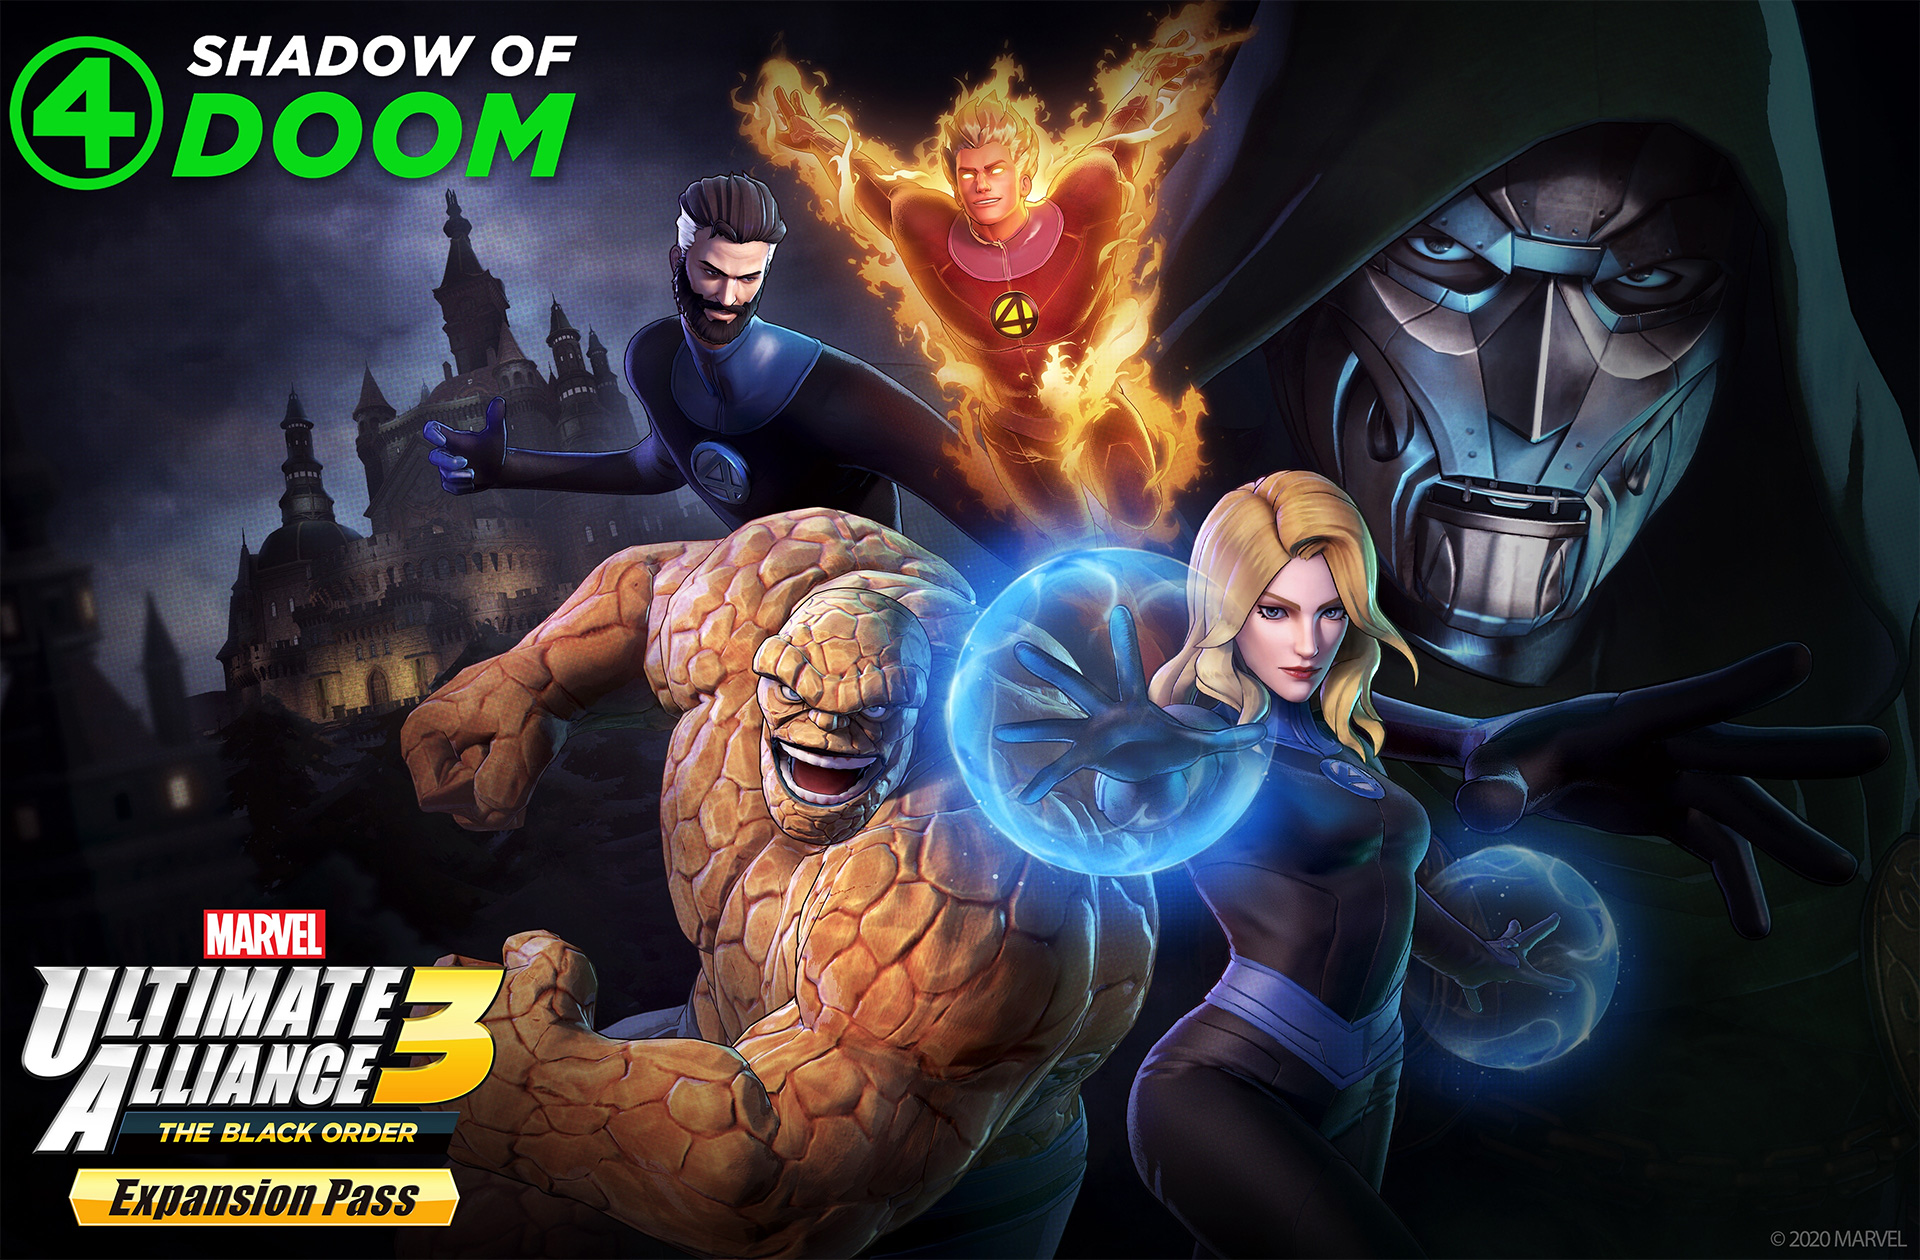 Marvel Ultimate Alliance 3's Shadow of Doom DLC is out March 26 screenshot